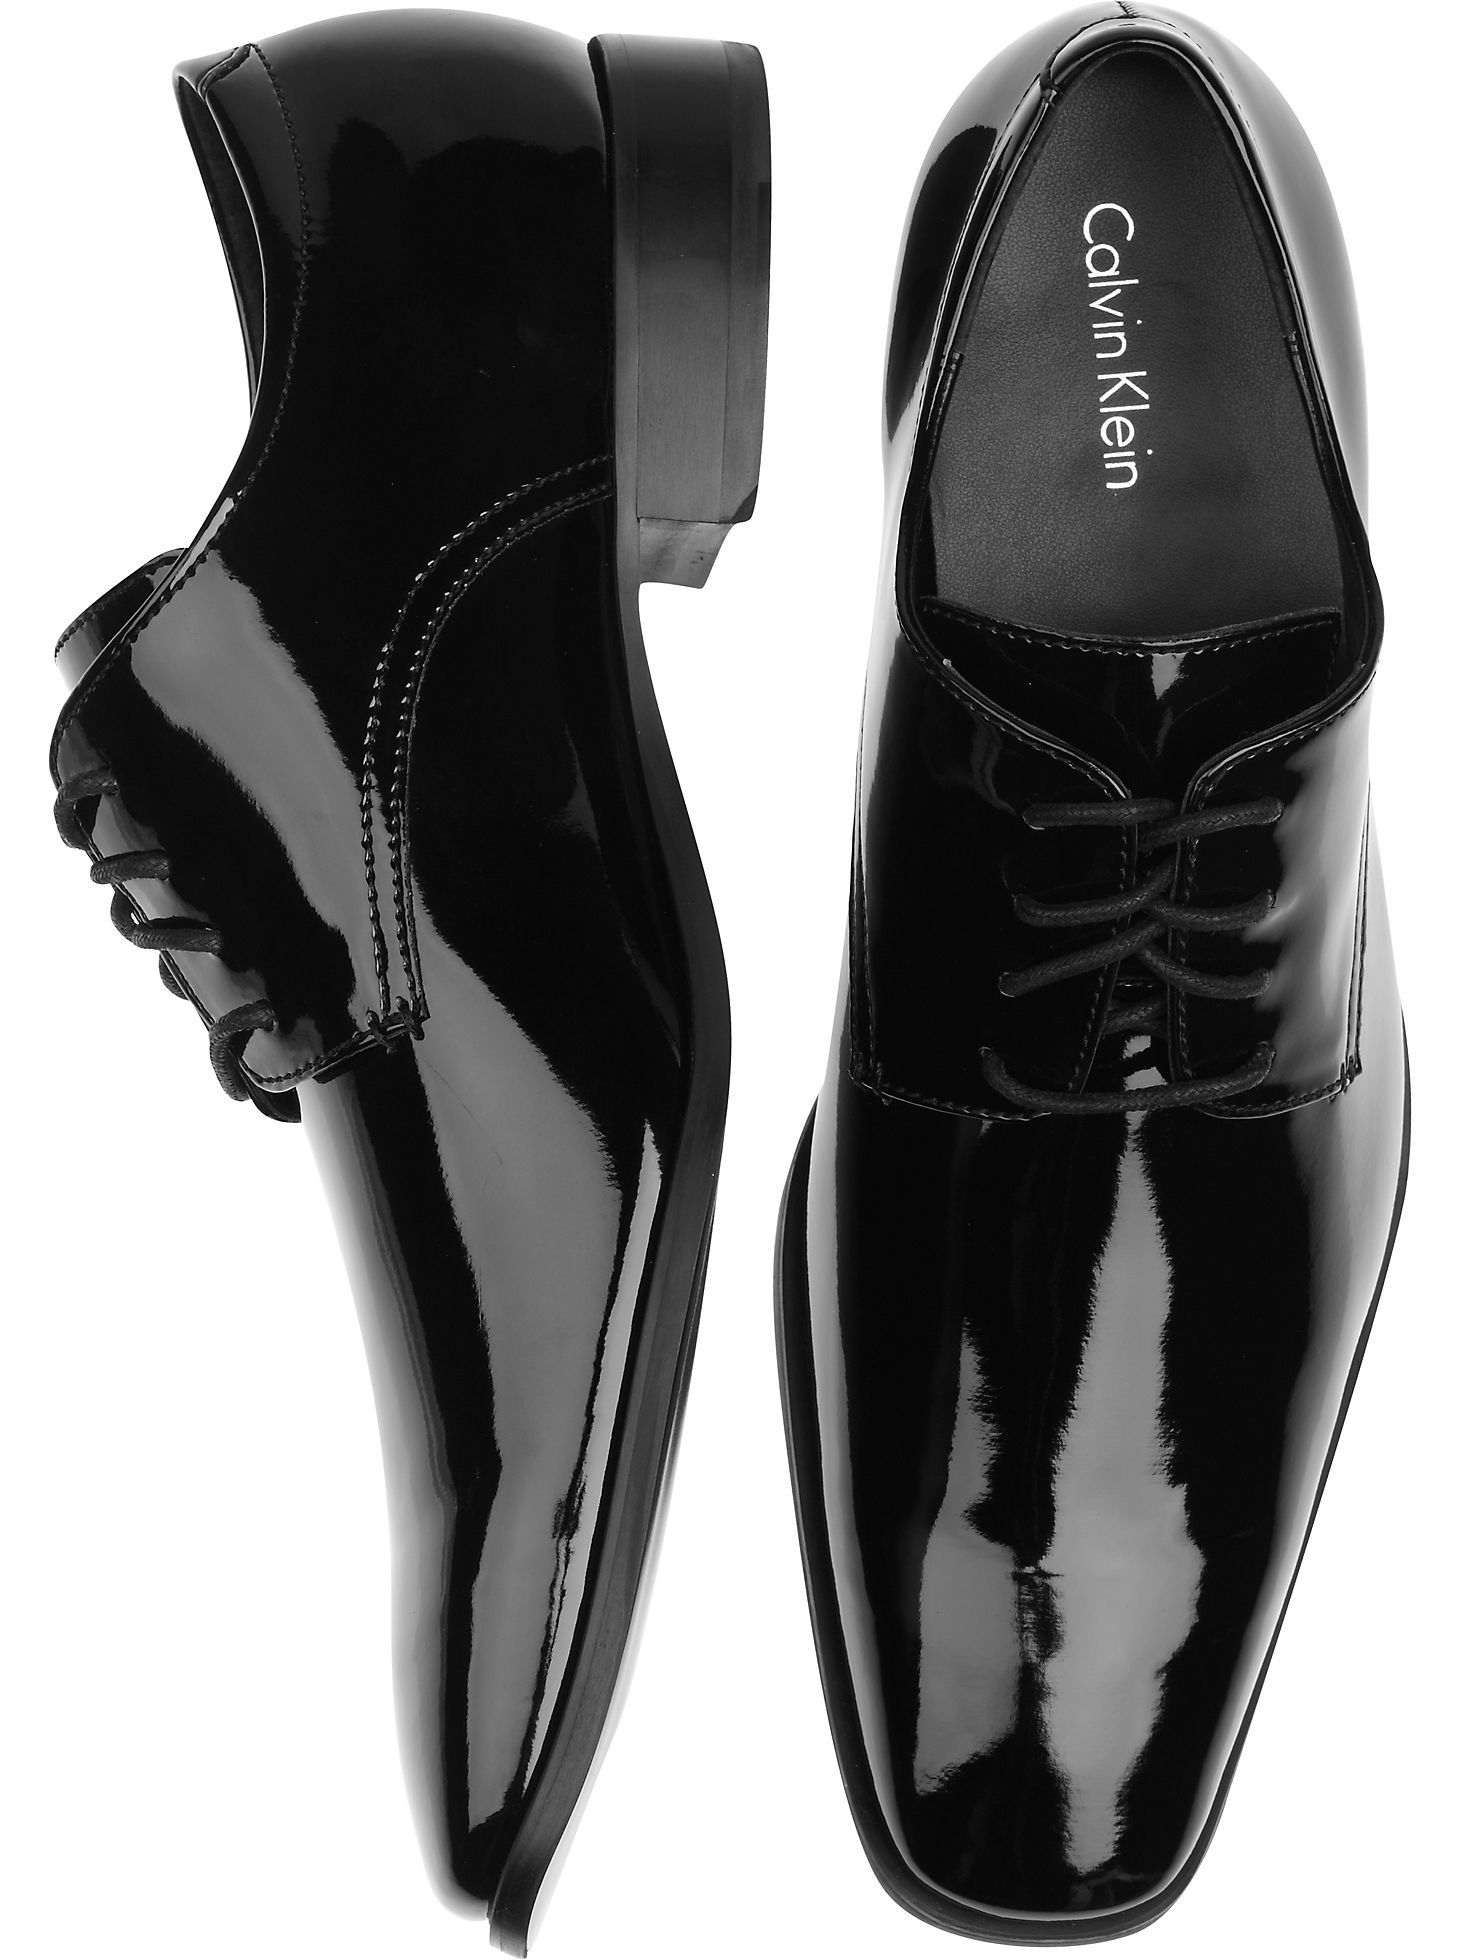 Shoes - Calvin Klein Gareth Black Patent Tuxedo Shoes - Men s Wearhouse e931e0a2abb4